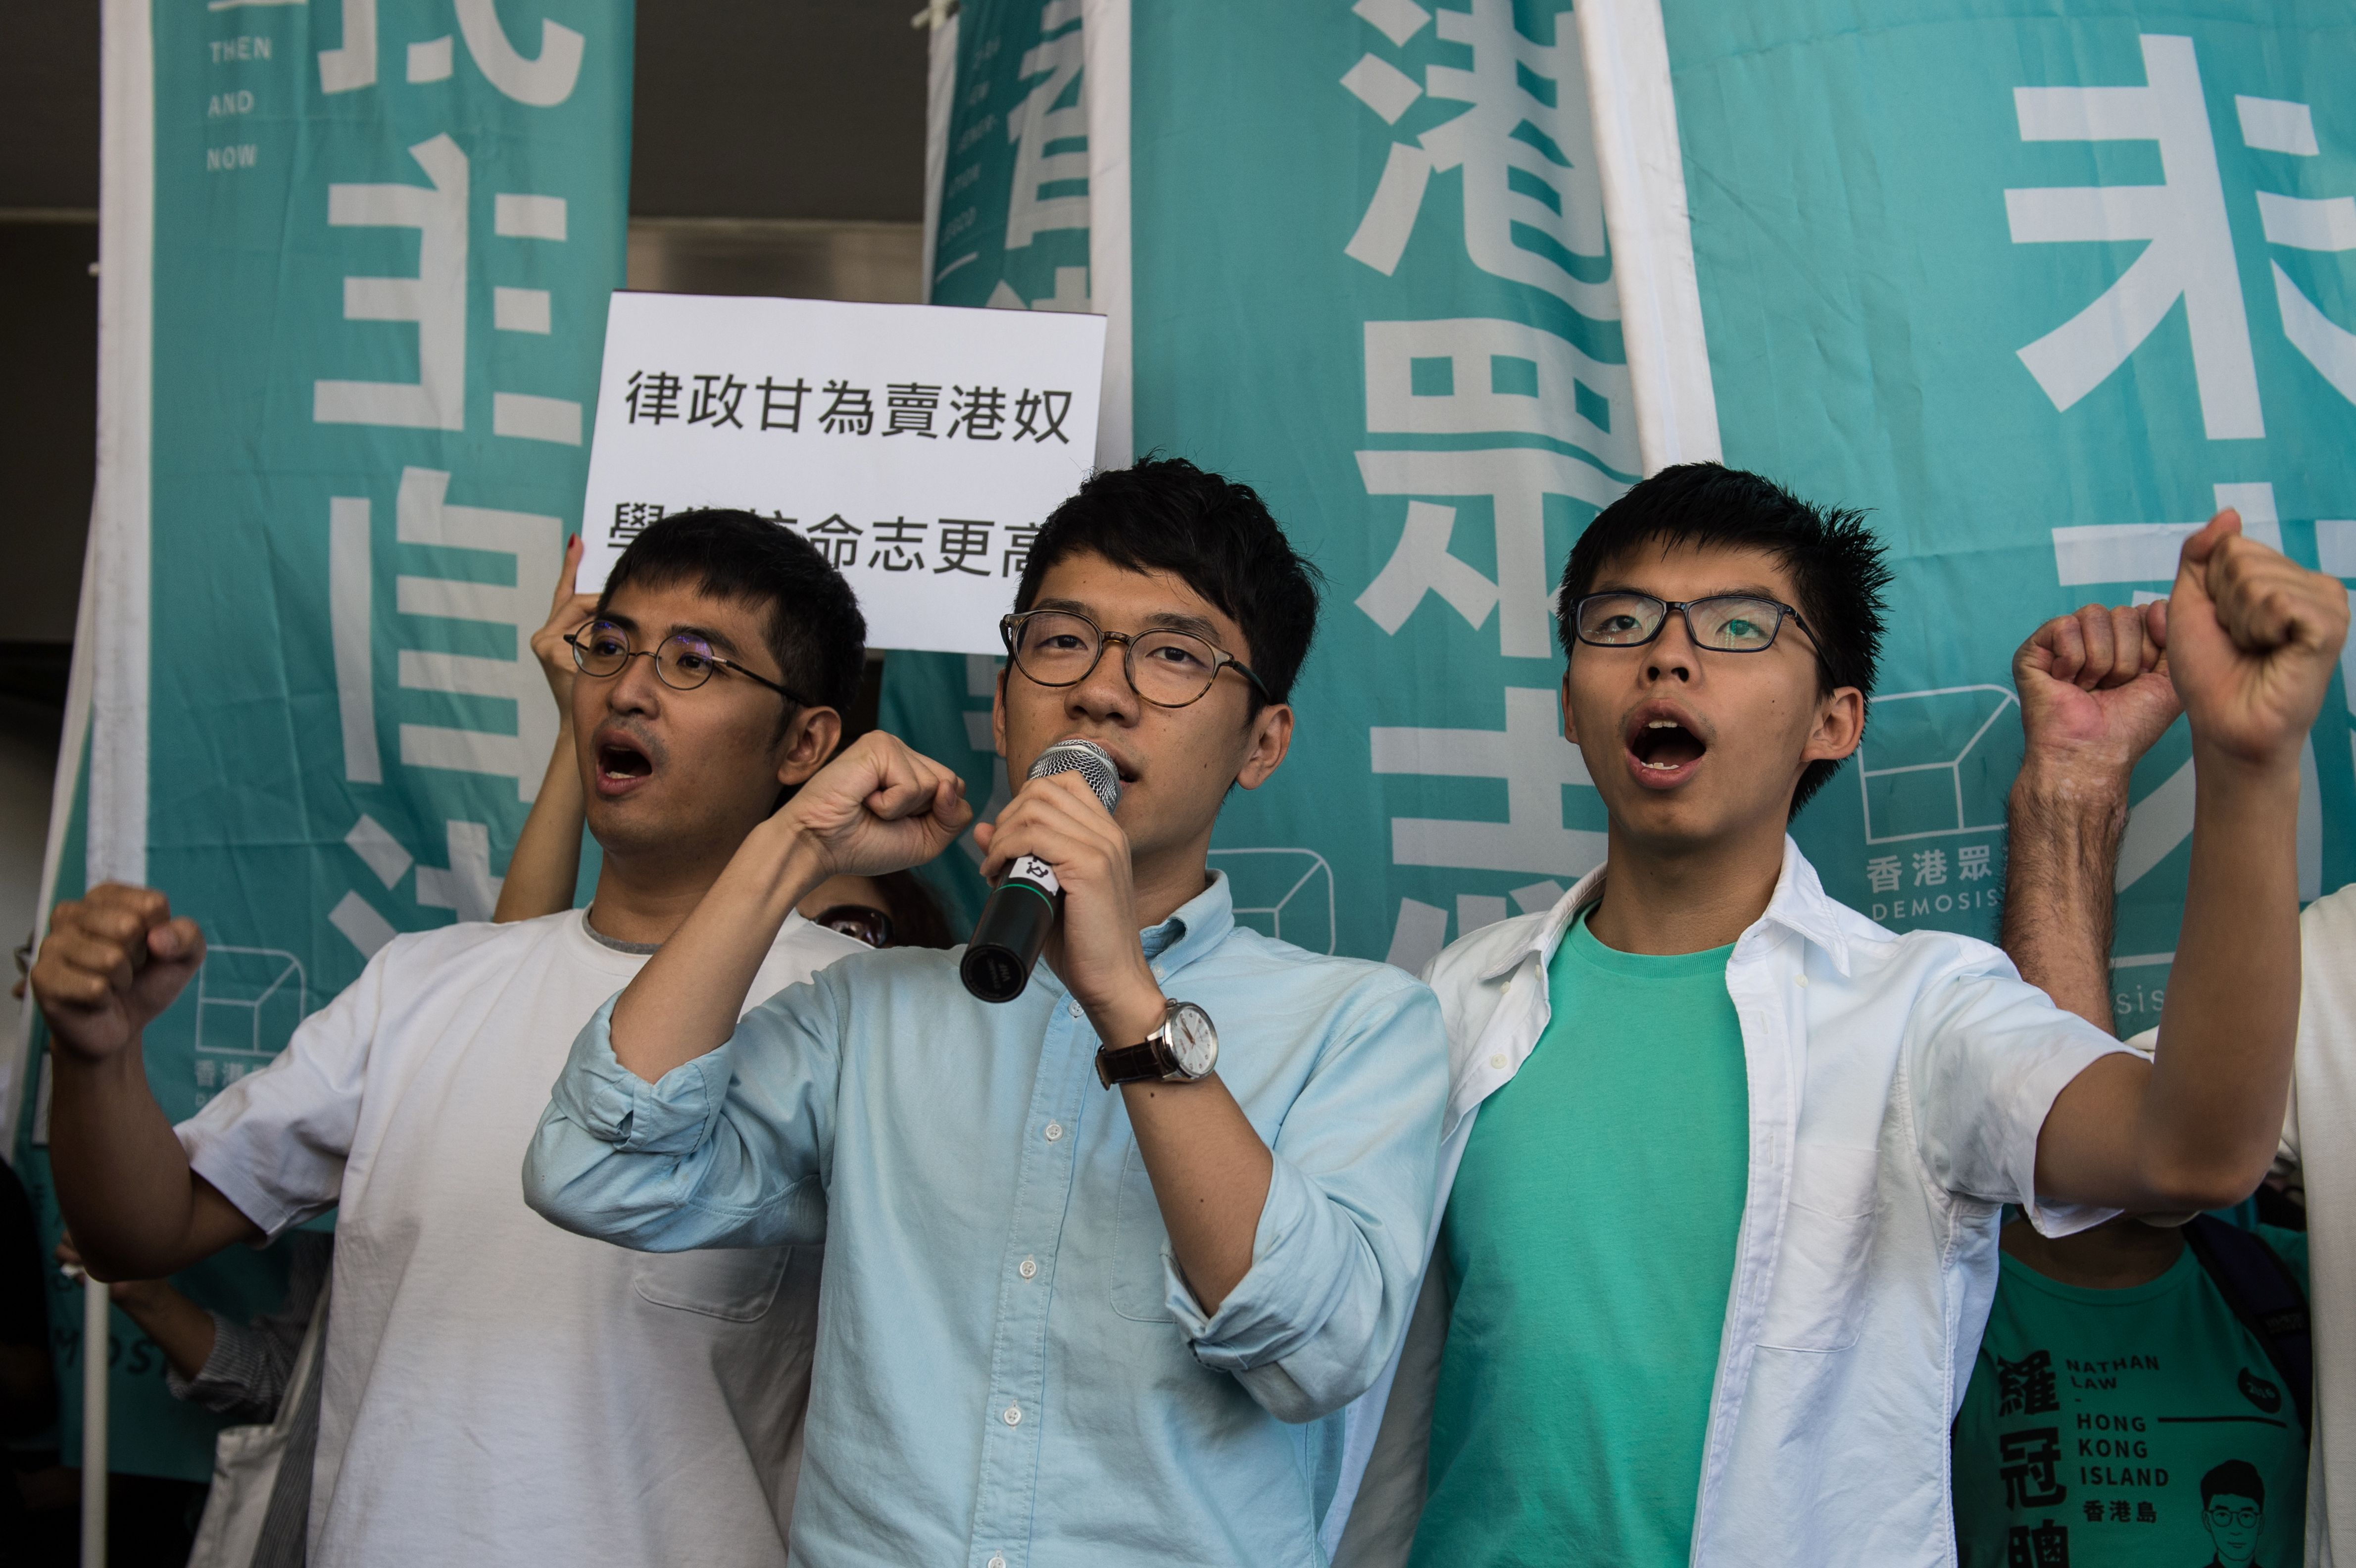 Leaders of Hong Kong's Umbrella Revolution, from left, Alex Chow, Nathan Law and Joshua Wong shout slogans as they arrive at the Eastern Court in Hong Kong on Sept. 21, 2016